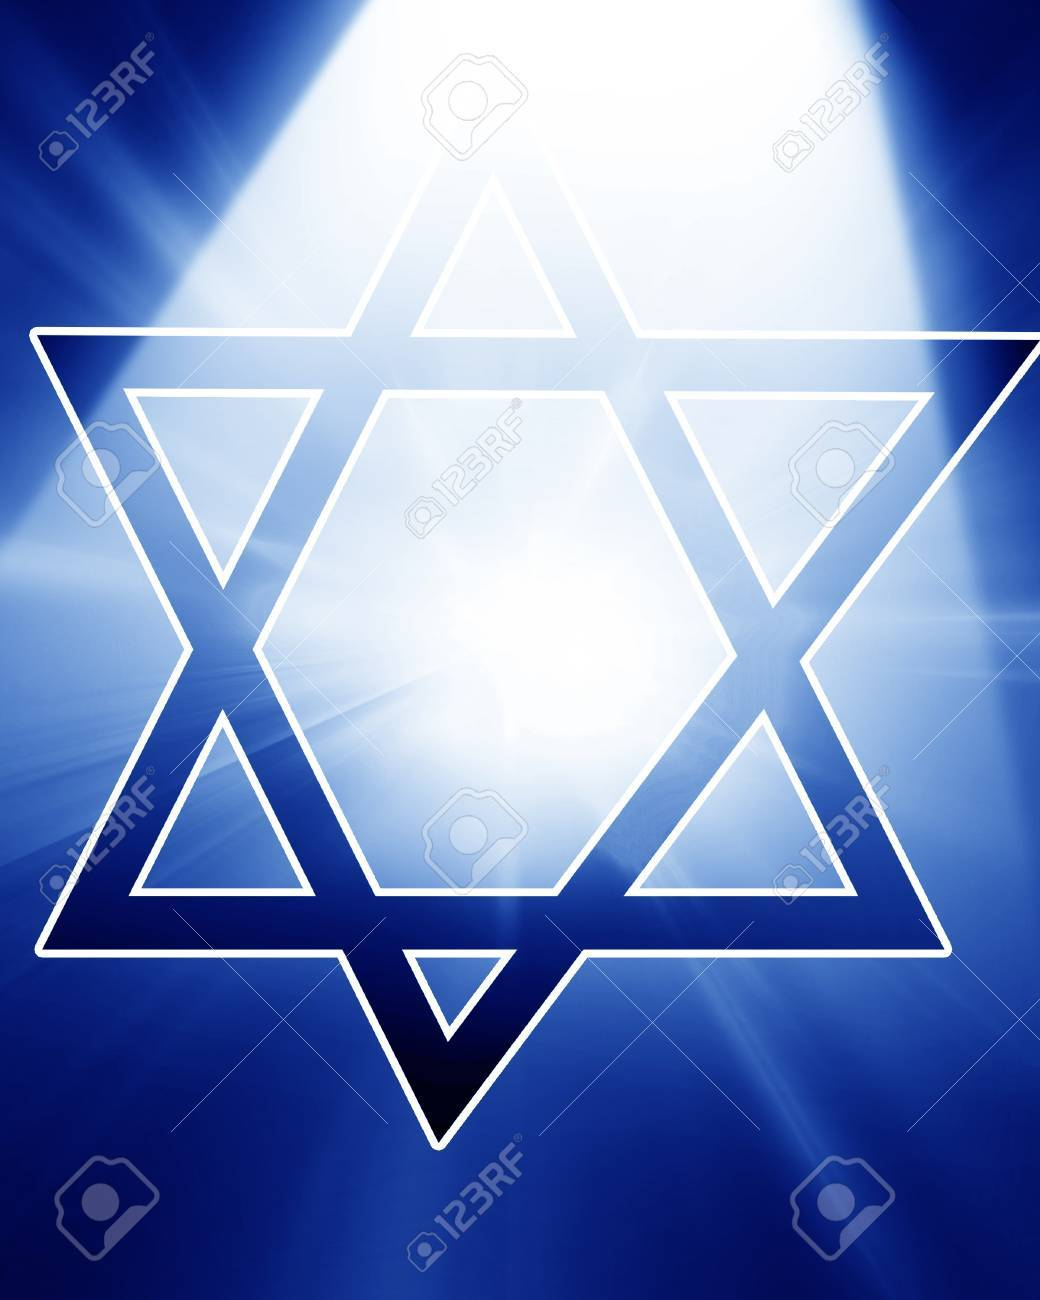 Star of David, representing the Jewish religious symbol Stock Photo - 14670036